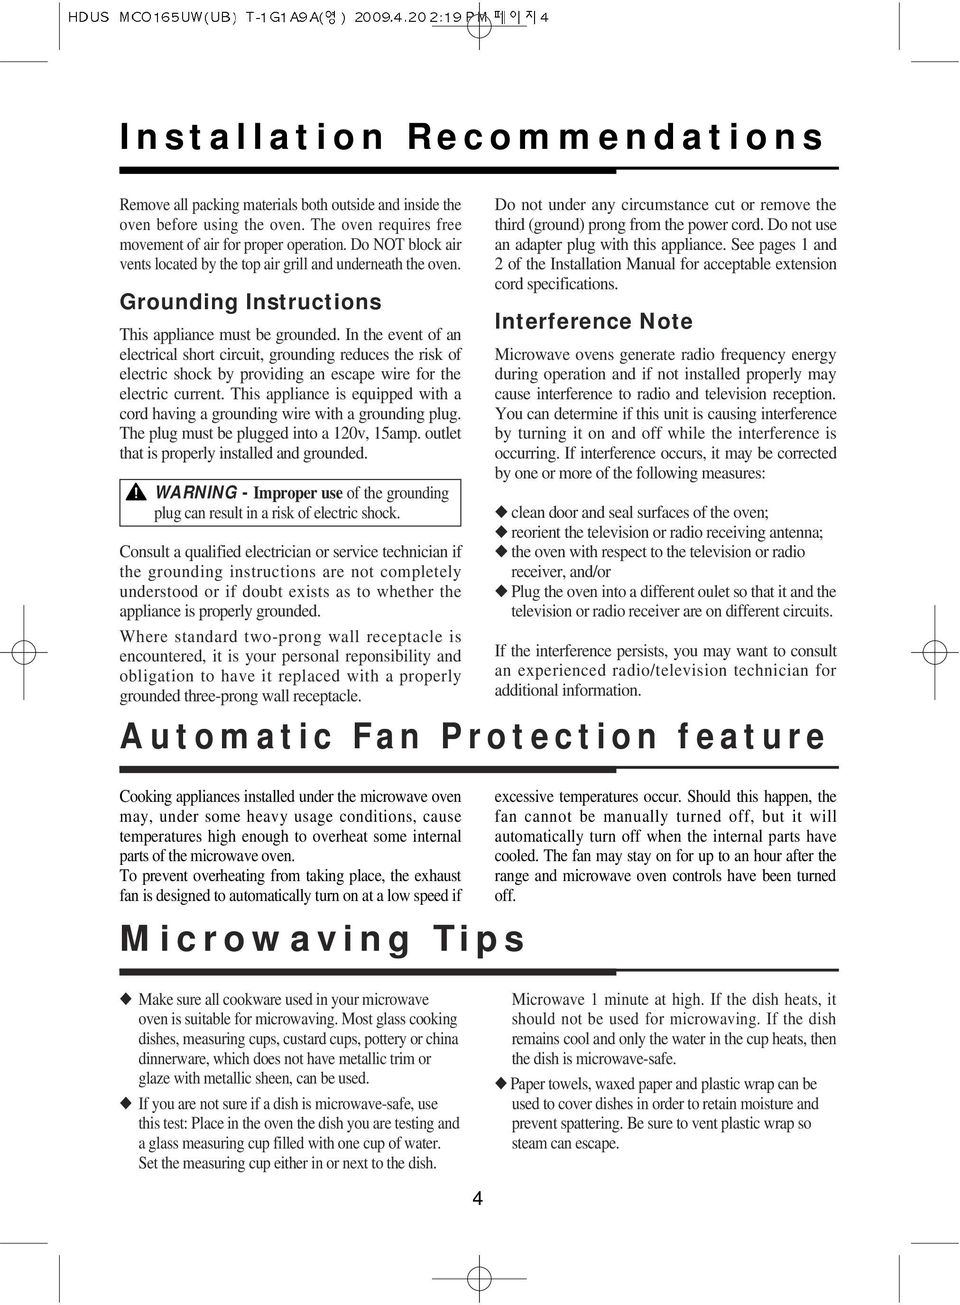 Microwave Oven Use And Care Manual Mco165uw Mco165ub Important Circuit In The Event Of An Electrical Short Grounding Reduces Risk Electric Shock